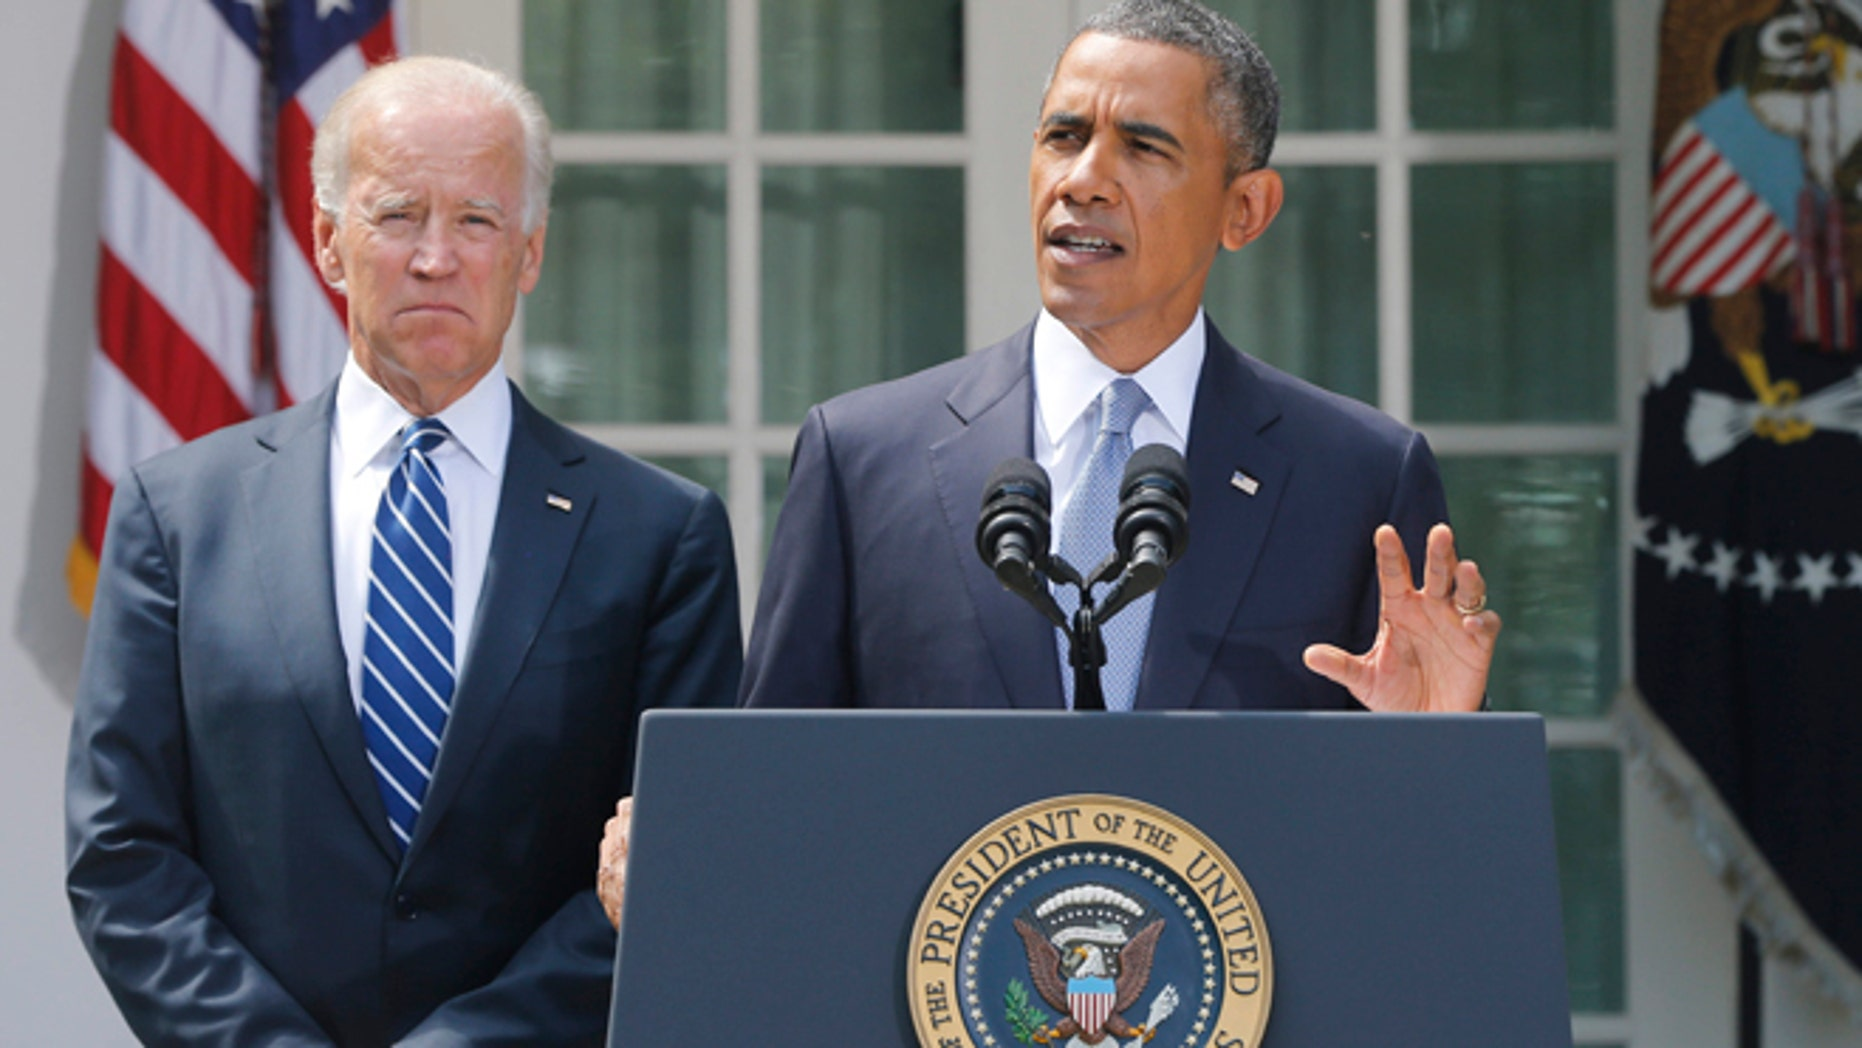 Aug. 31, 2013: President Obama with Vice President Biden as he makes a statement about Syria in the Rose Garden at the White House in Washington.